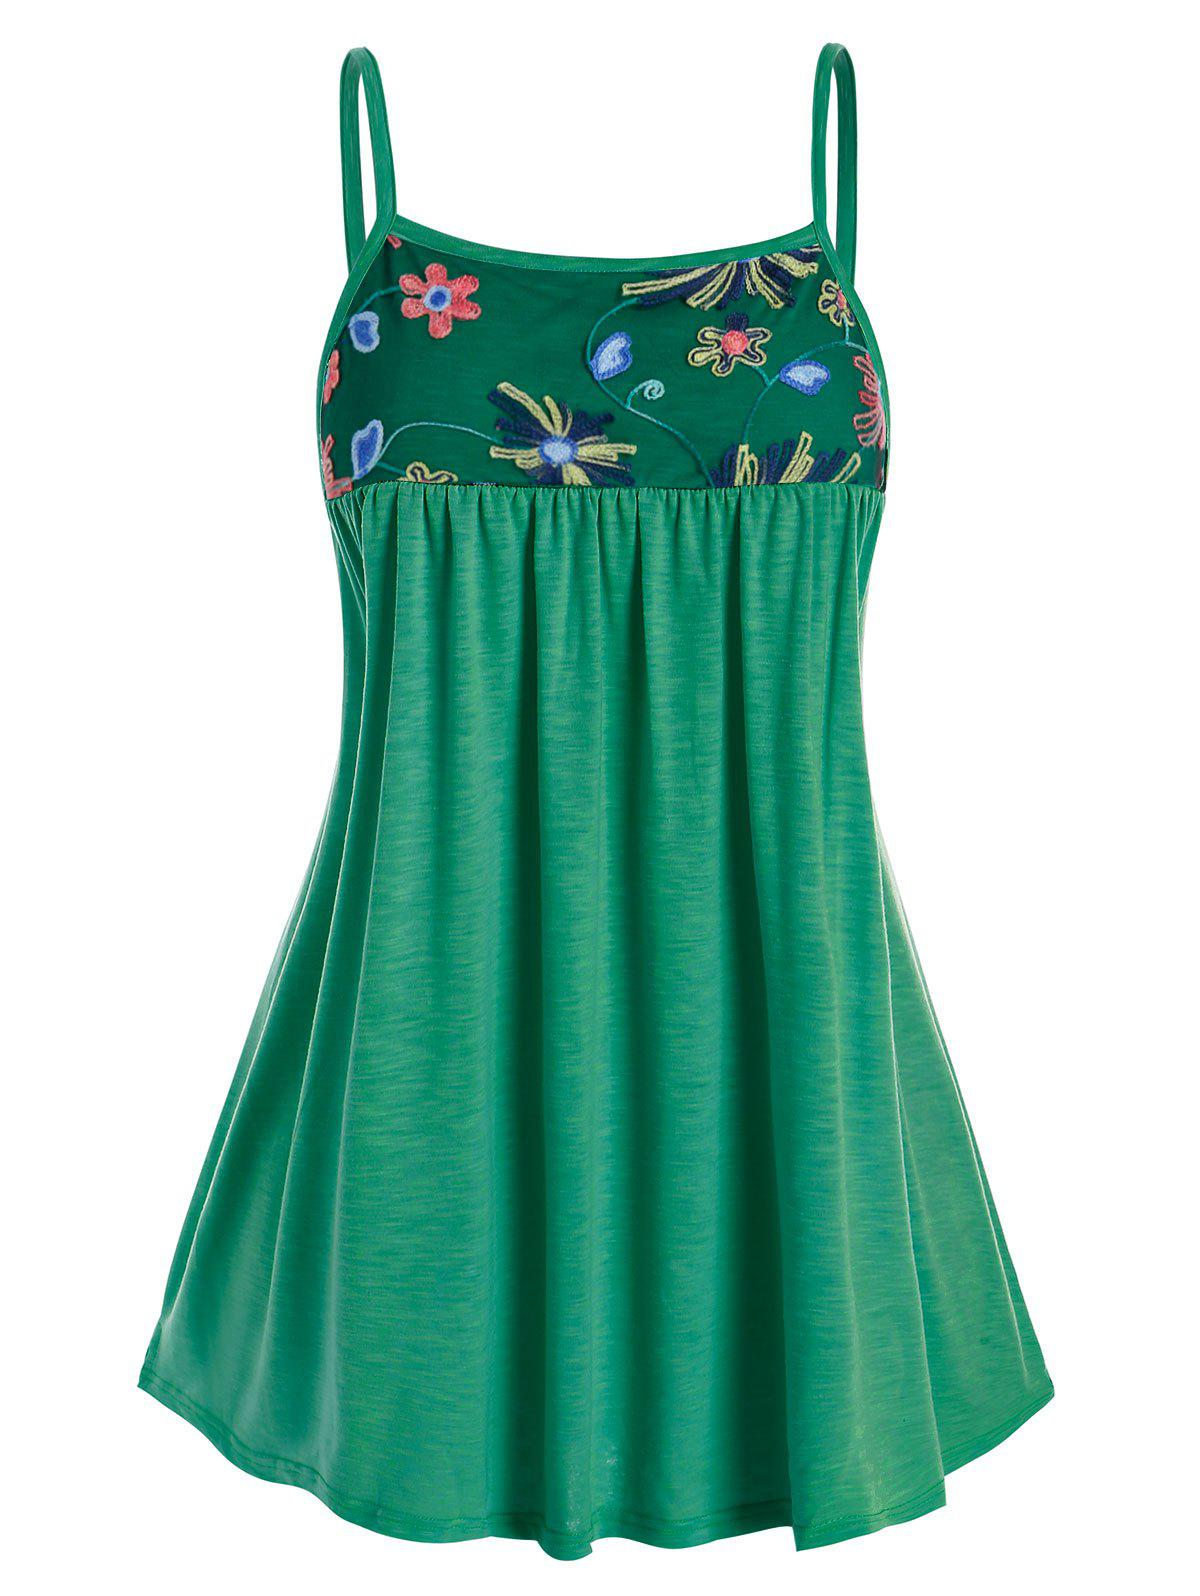 Fashion Plus Size Embroidered Mesh Swing Cami Top